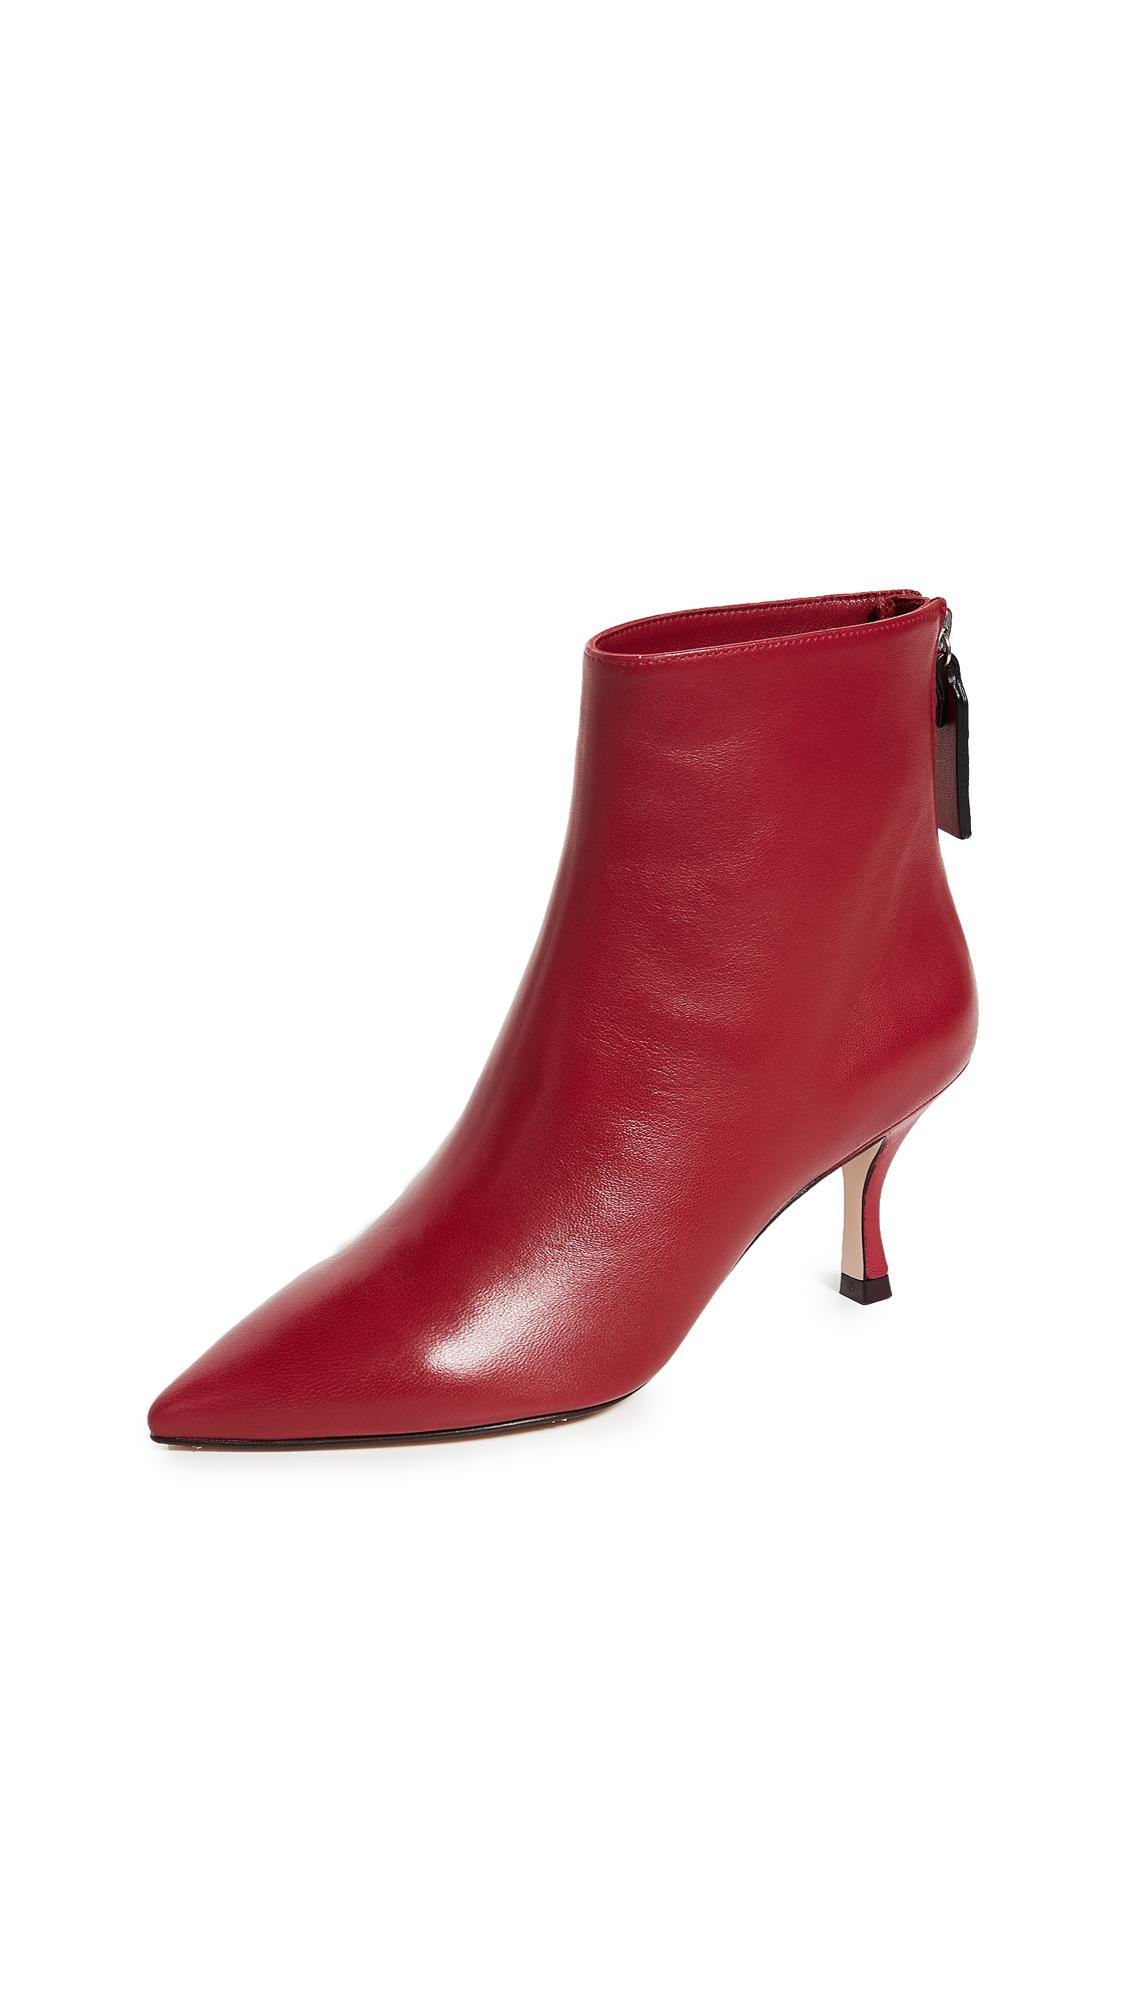 Stuart Weitzman Juniper 70mm Booties - Crimson